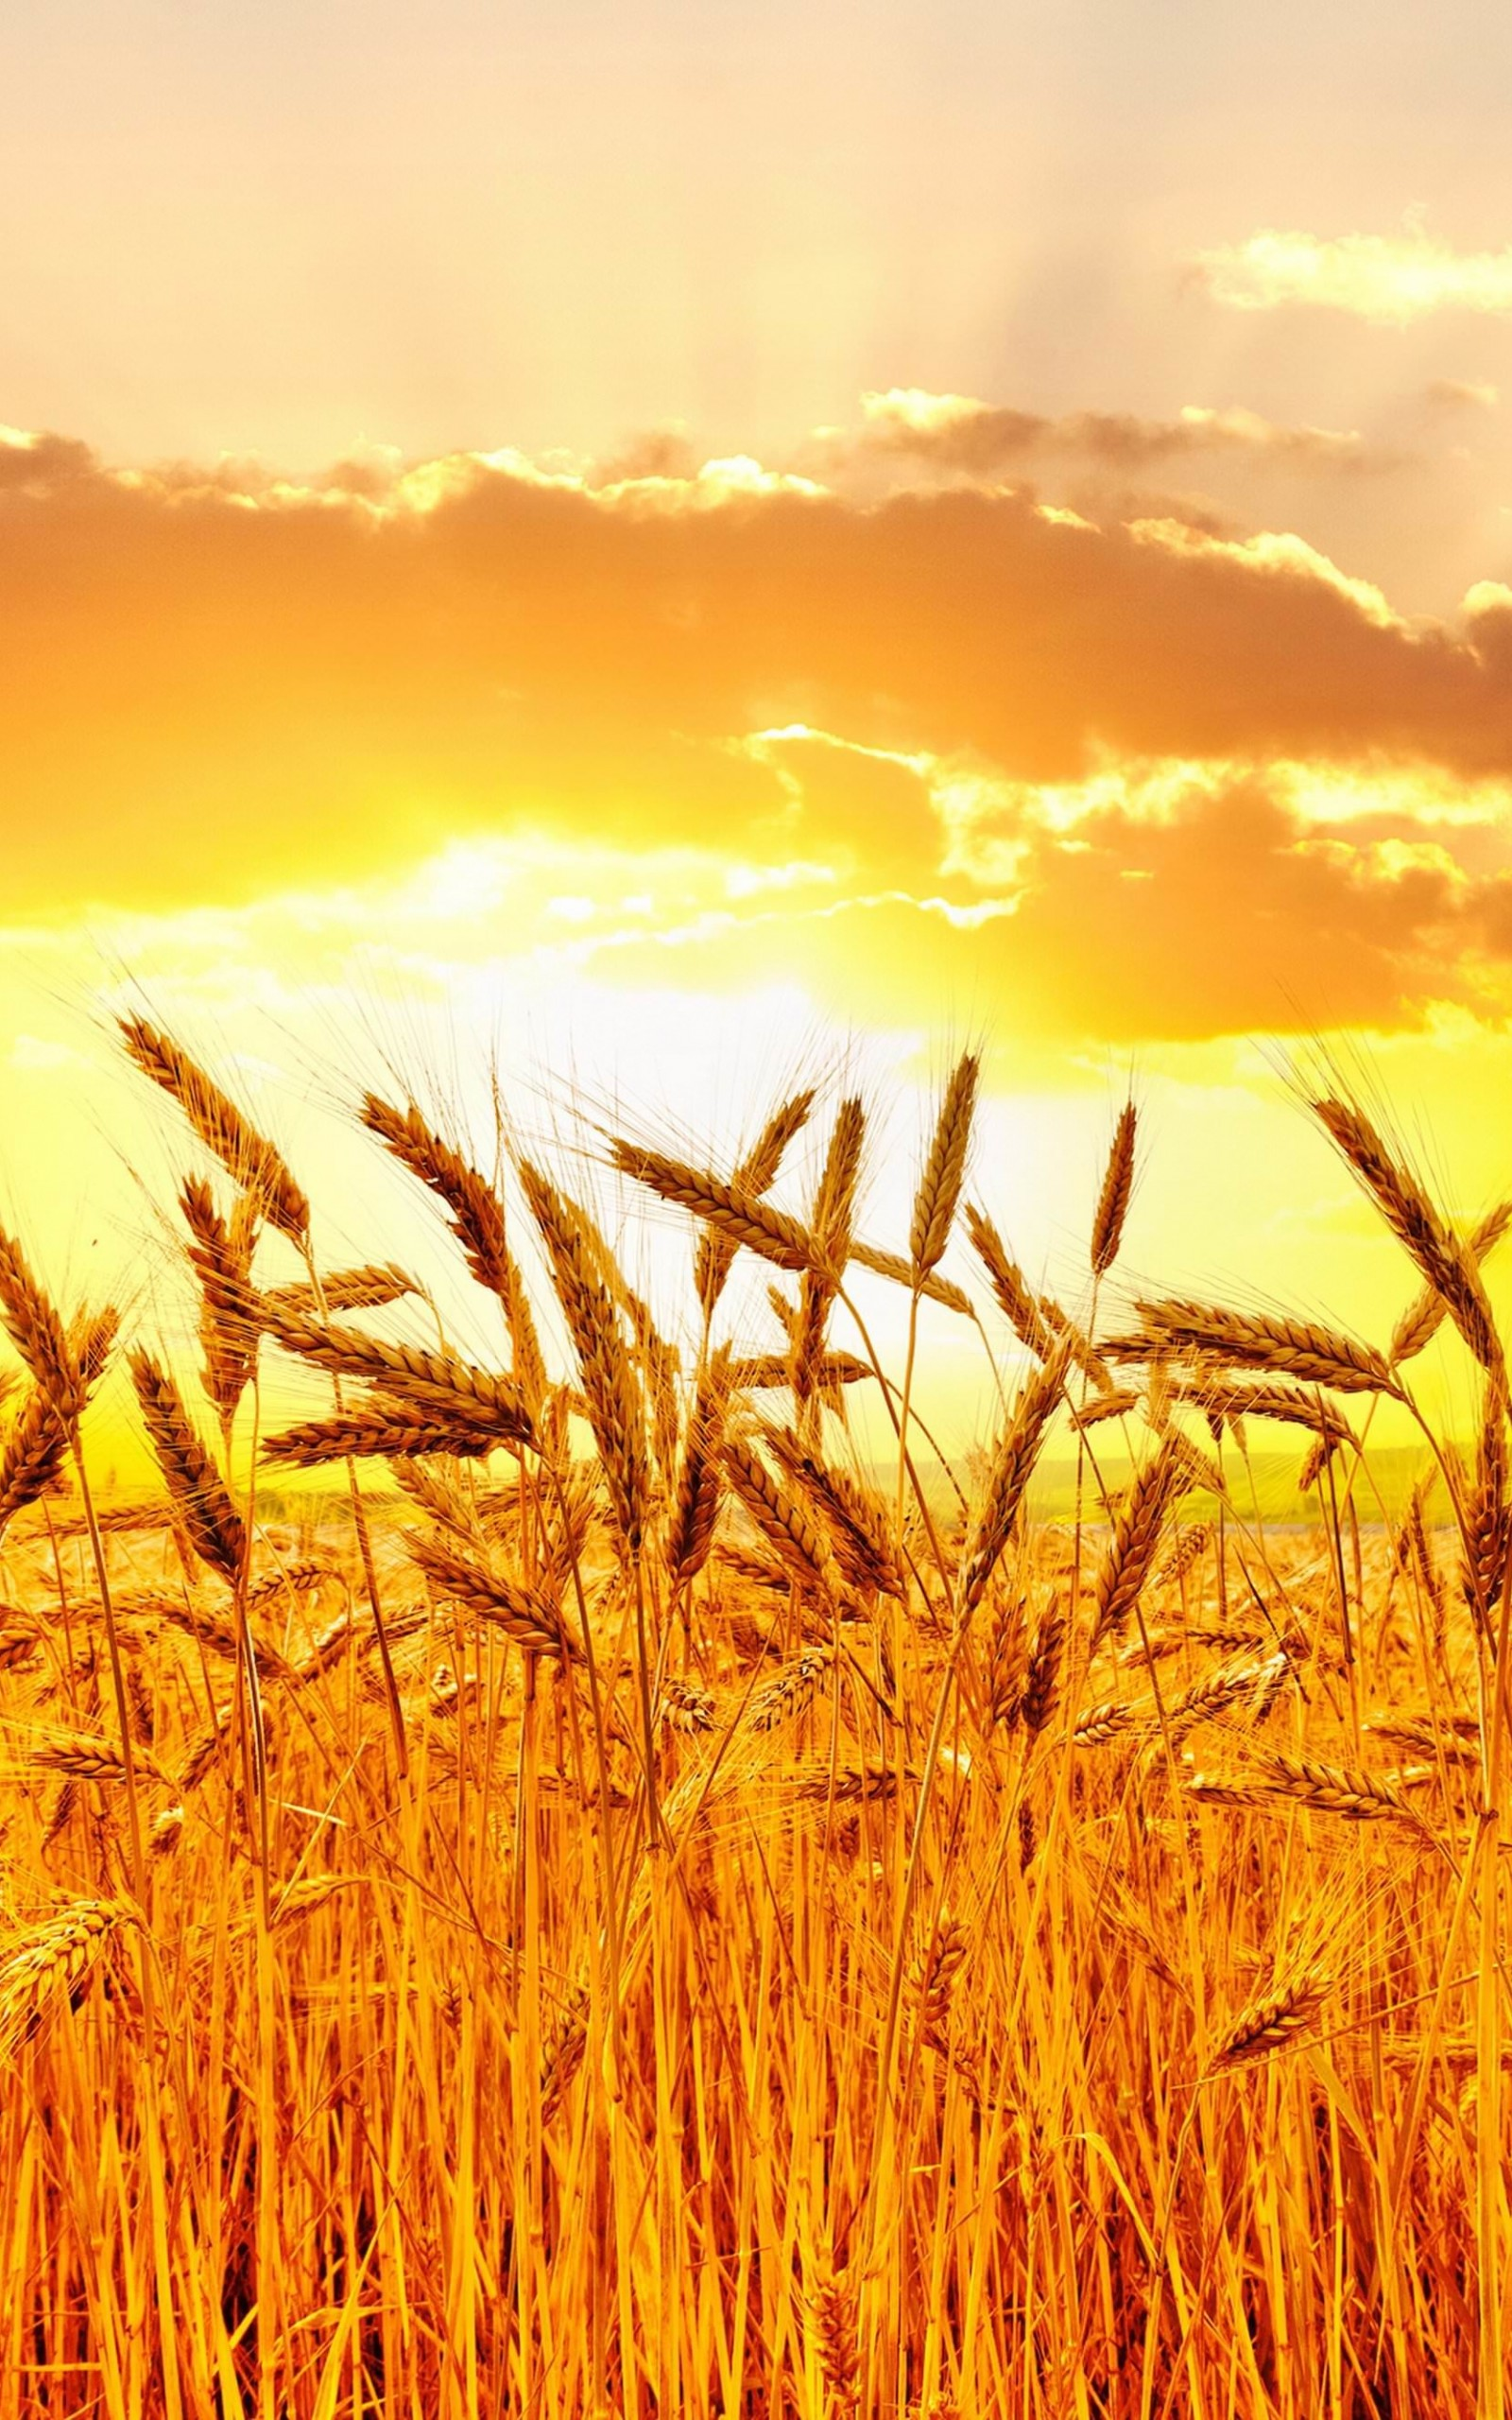 Golden Wheat Field At Sunset Wallpaper for Amazon Kindle Fire HDX 8.9